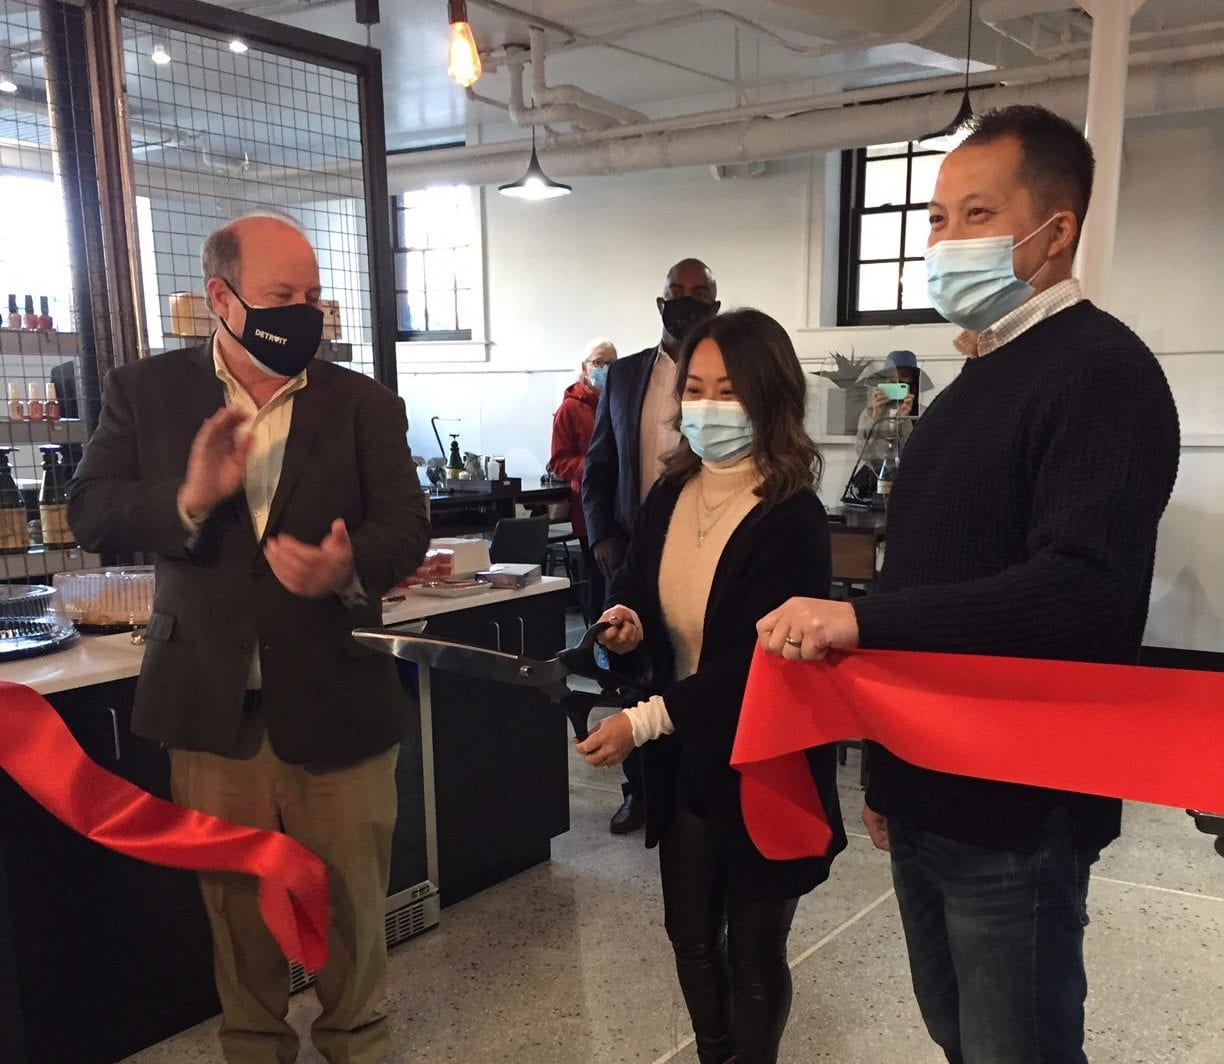 Owner cutting ribbon at ceremony